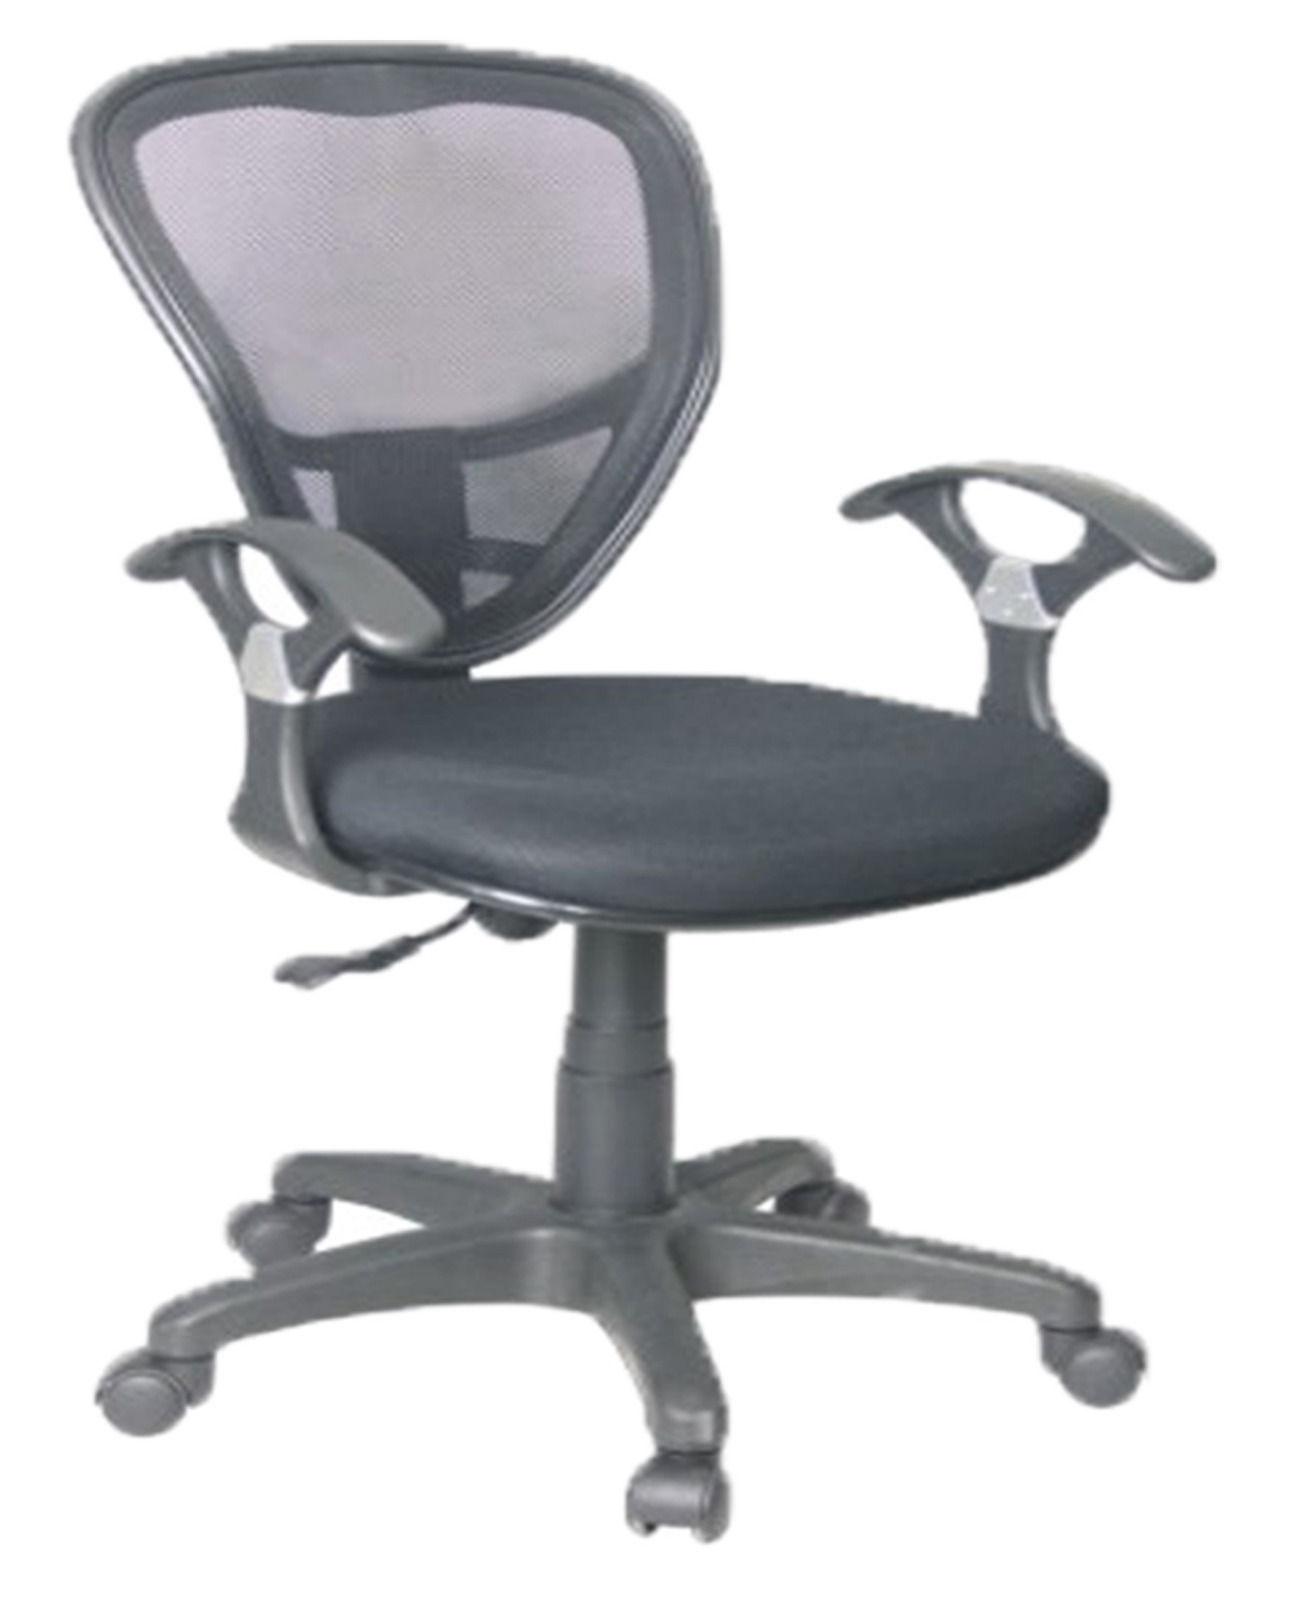 Artek Computer Desk Manager Office Chair w Black Mesh Fabric